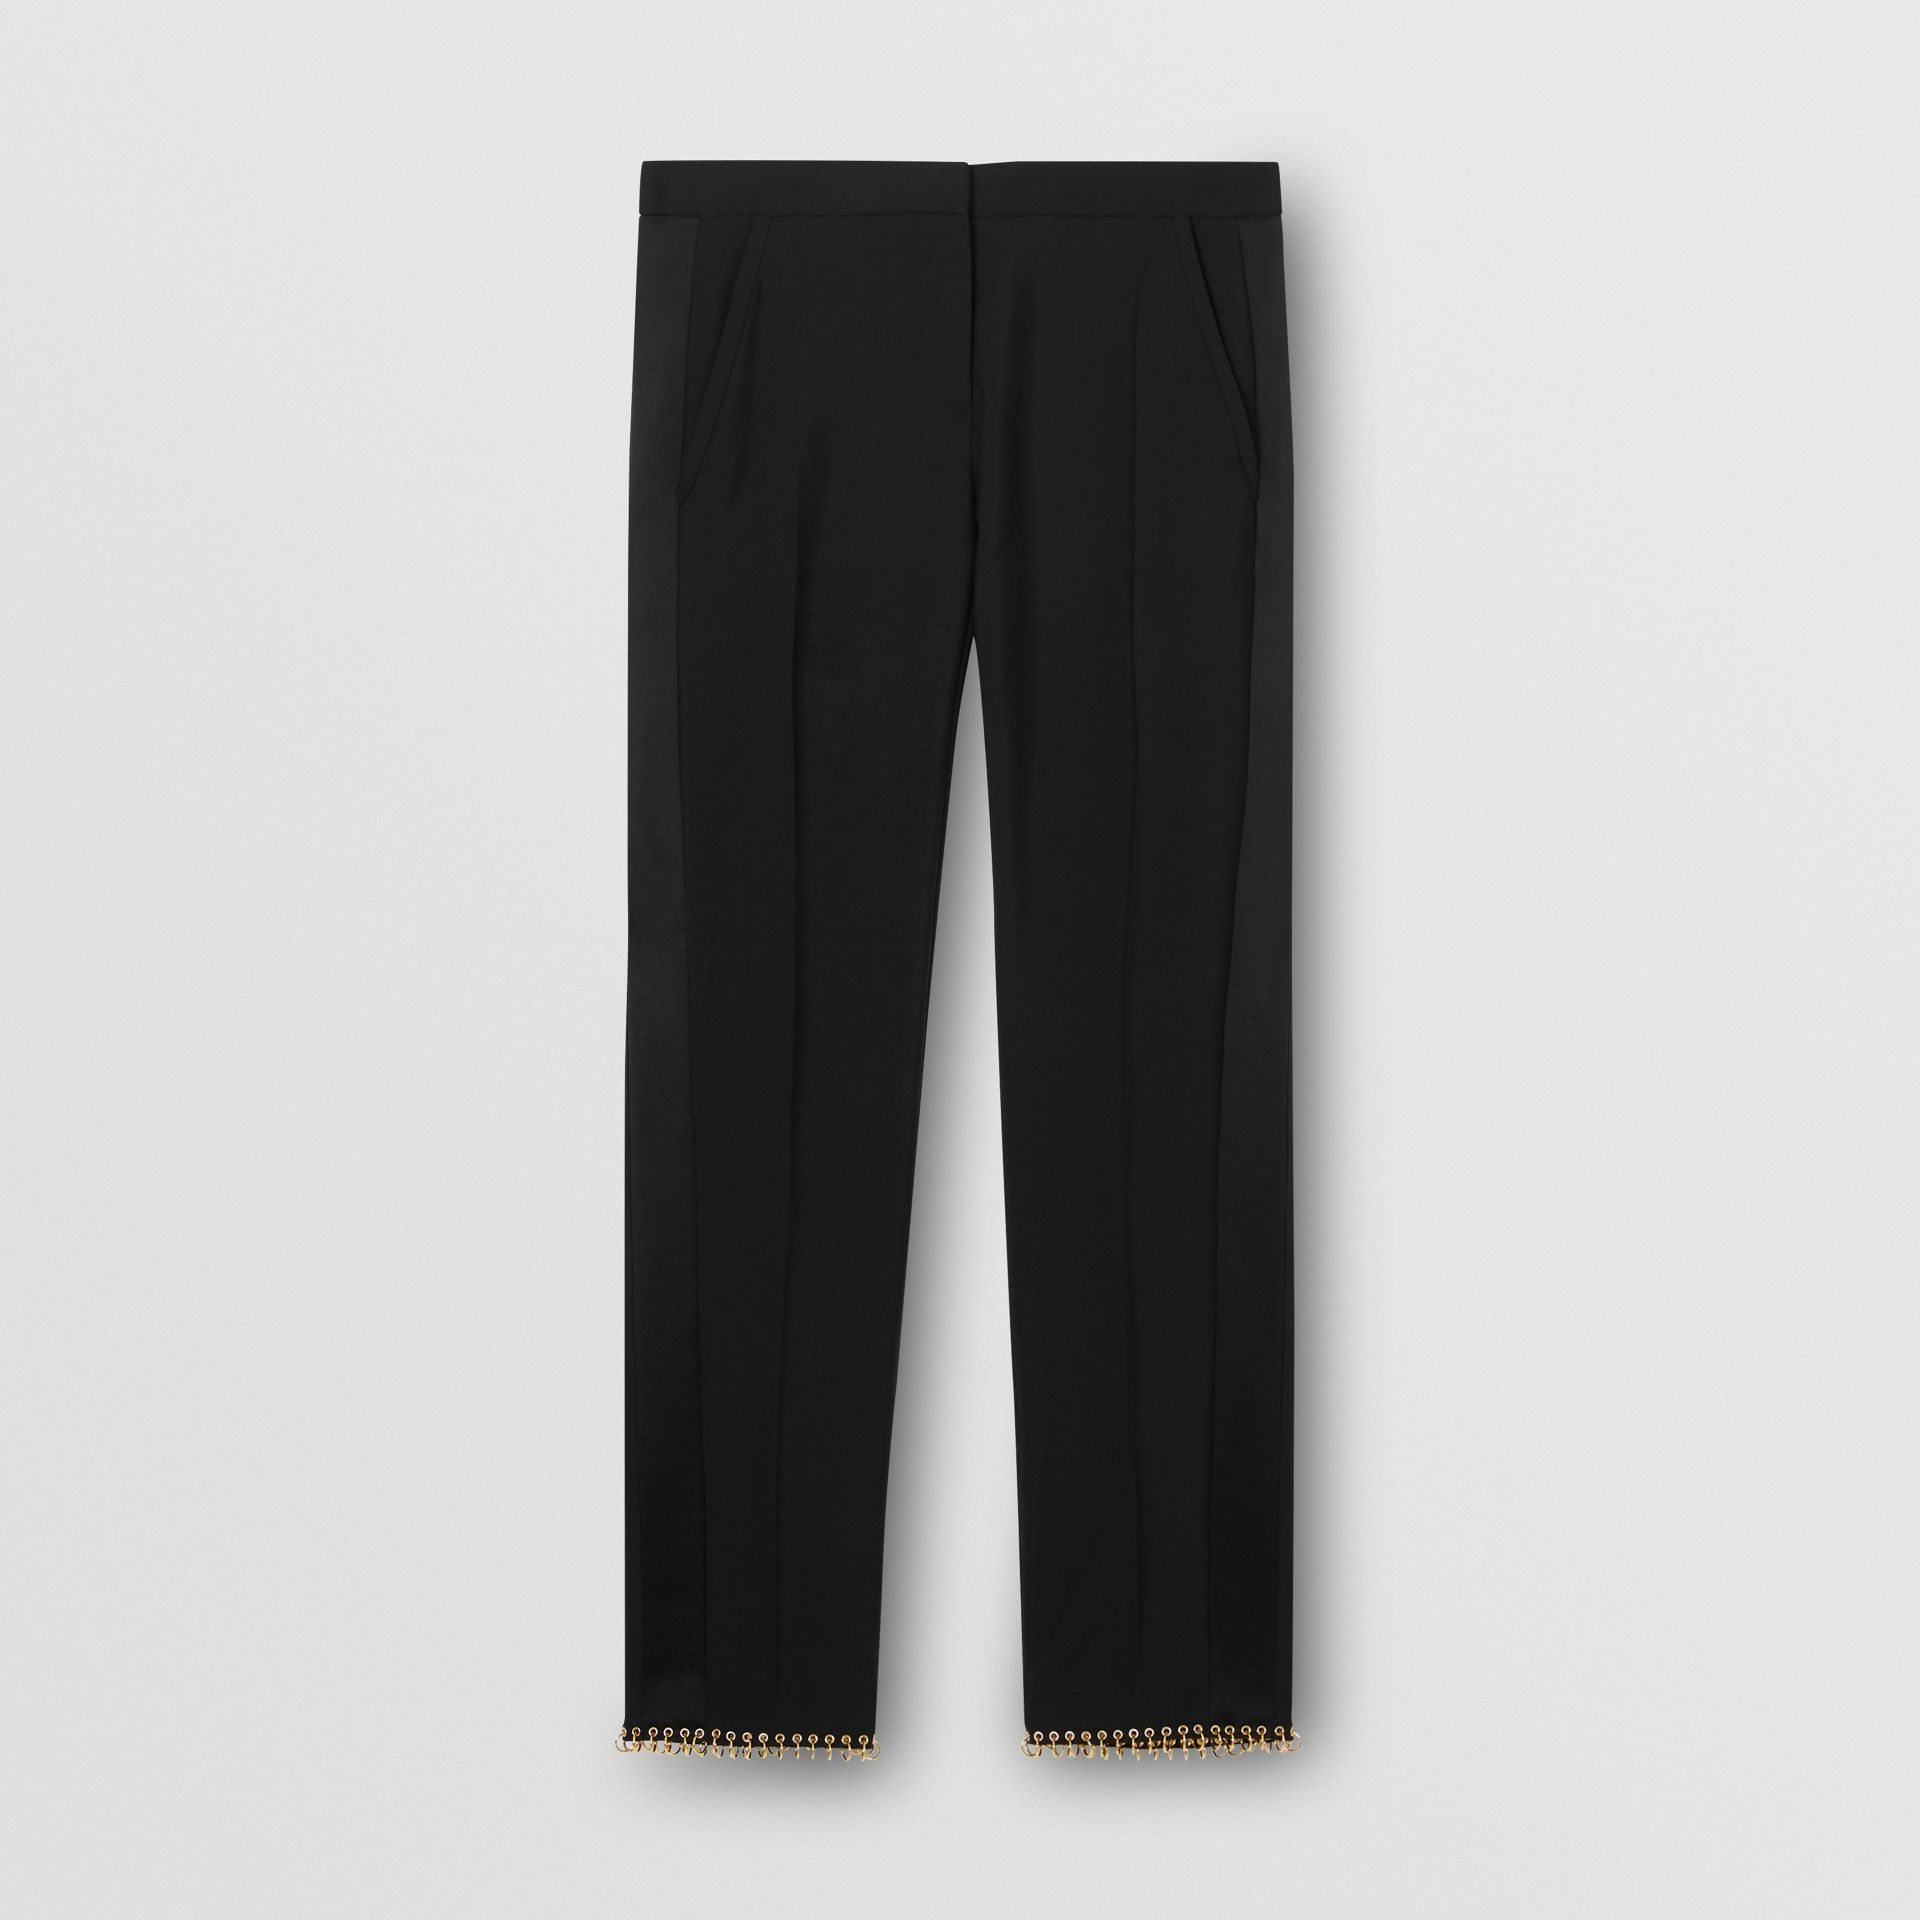 Ring-pierced Wool Tailored Trousers in Black - Women | Burberry Australia - gallery image 3